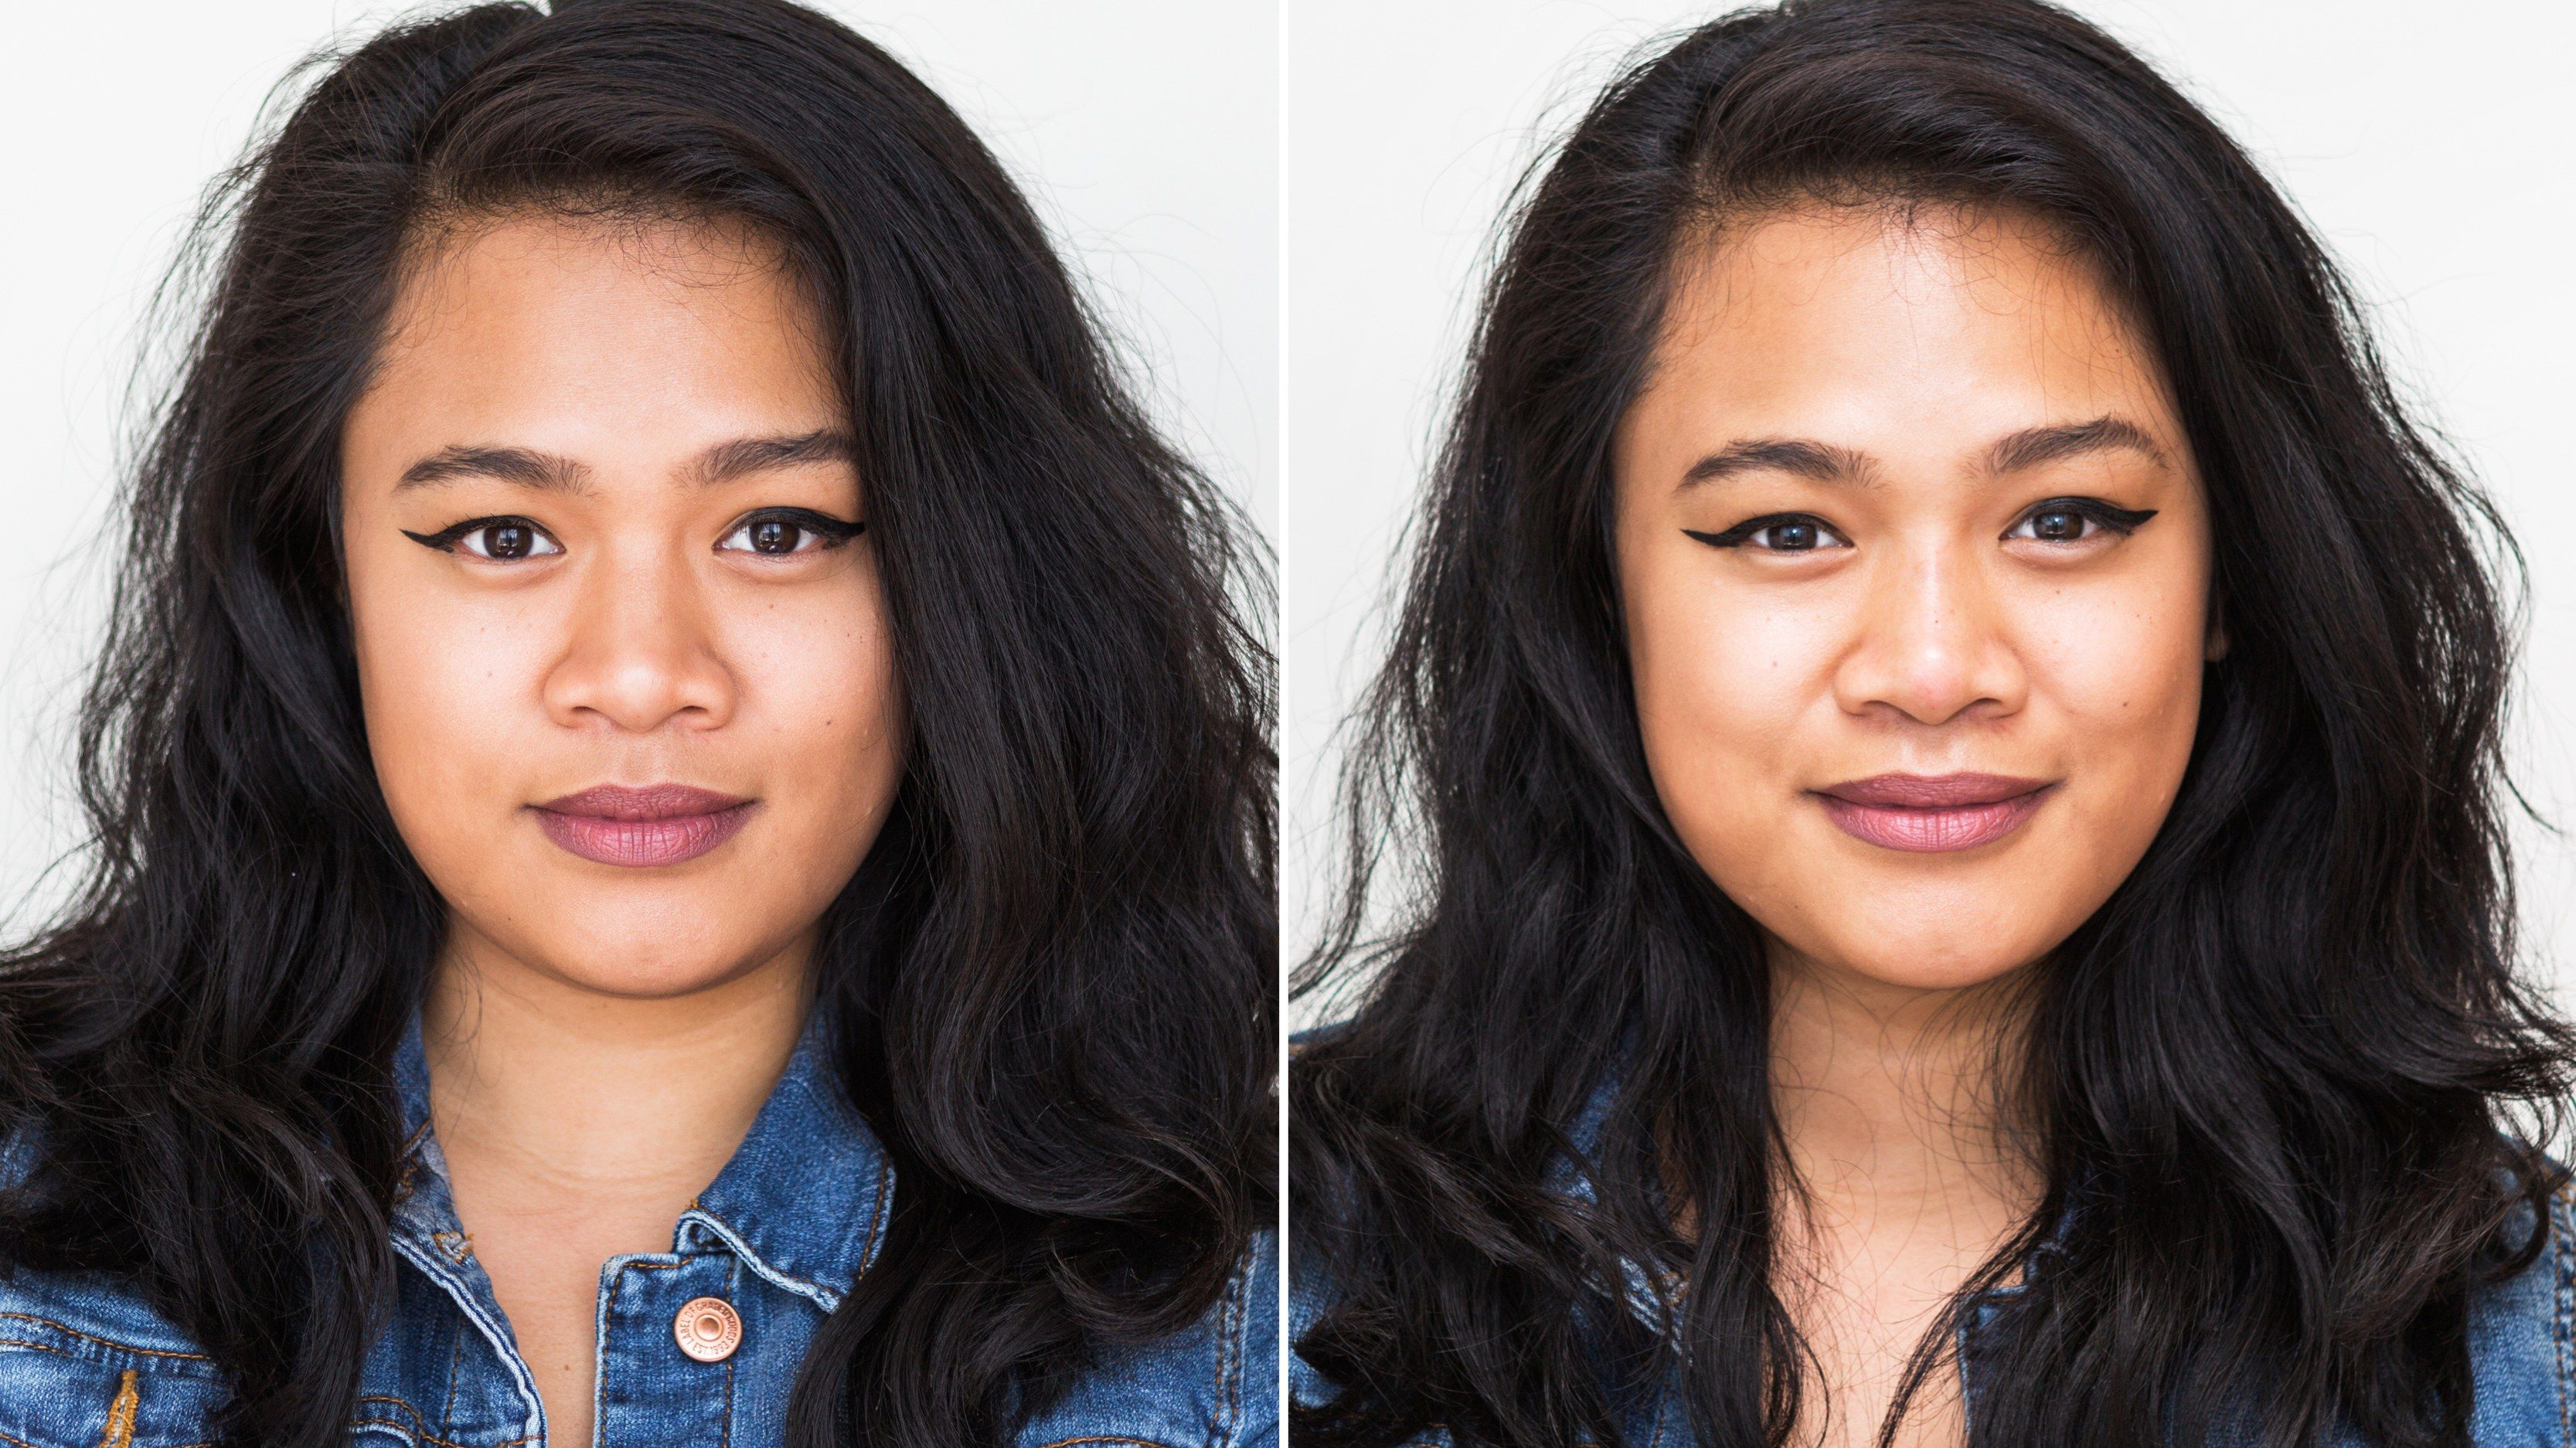 I got a nonsurgical nose job and it changed my face so